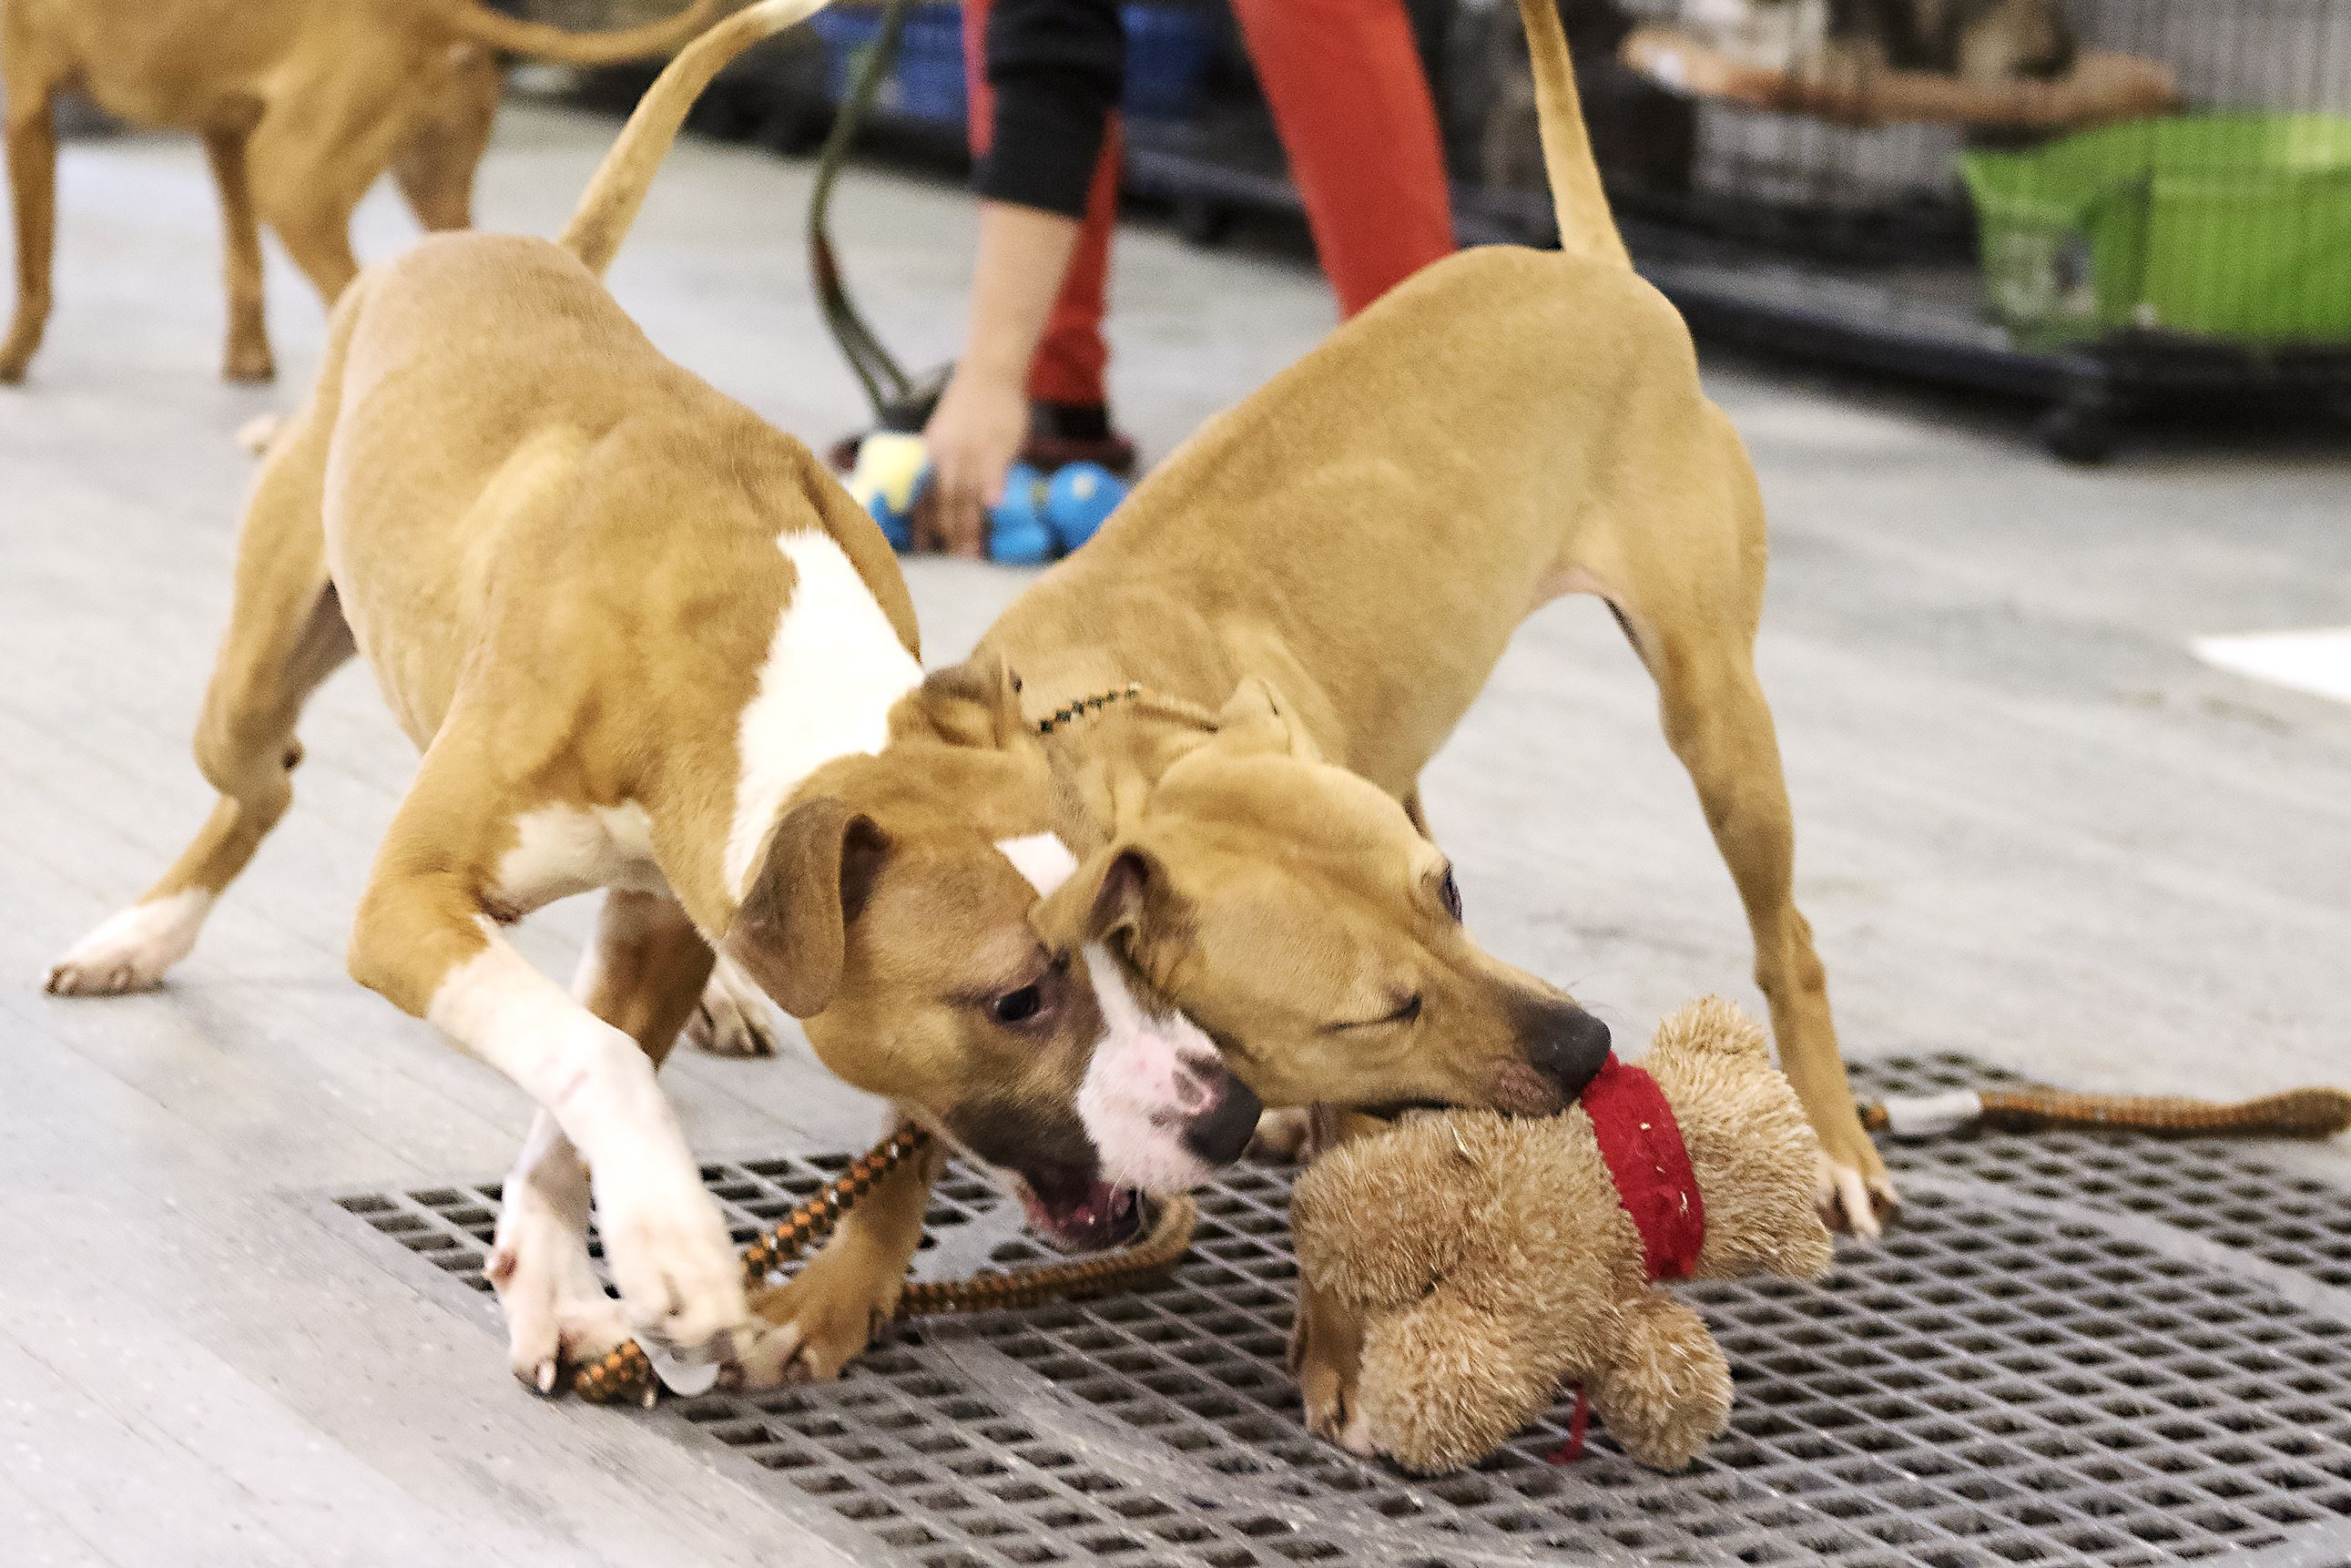 20170315hnpettales0318-5-4 Ten-month-old pit bull puppies Garfield, left, and Lady play with a toy at the Gaydos-Behanna Kennel. Garfield and Lady are from the same litter as Red, who was shipped off to Washington state where she will be trained and certified as a detection dog to track down drugs.